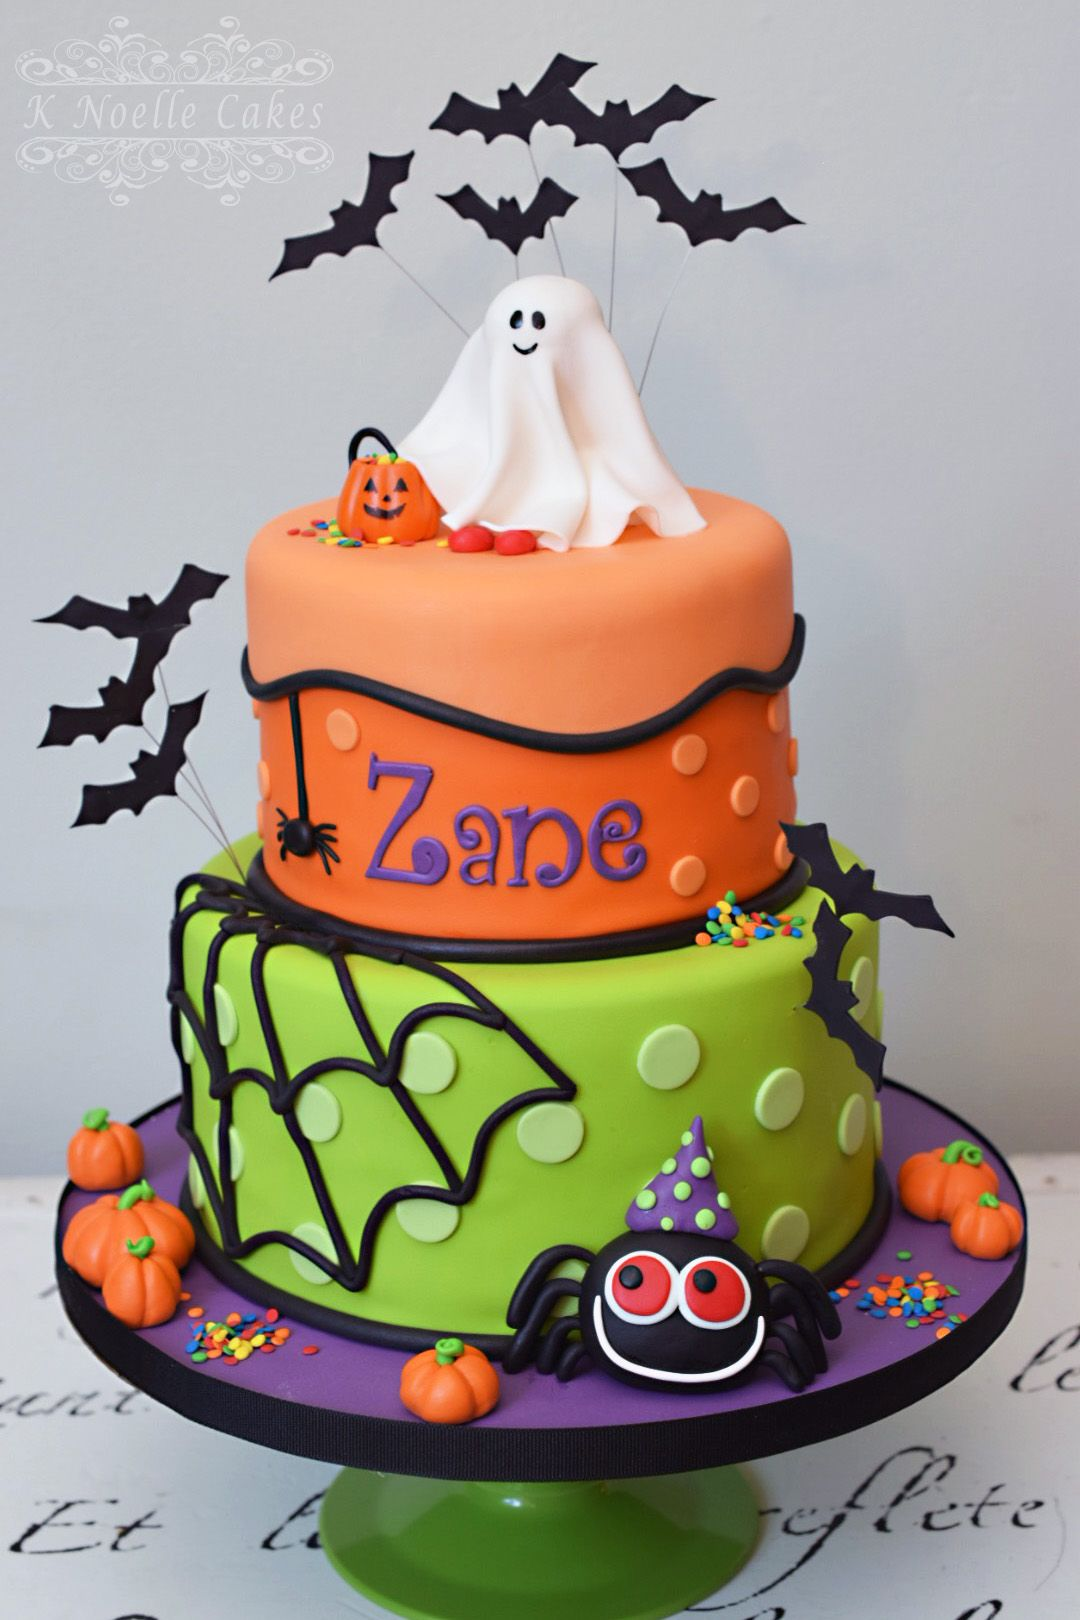 Pleasing Halloween Theme Birthday Cake By K Noelle Cakes With Images Personalised Birthday Cards Petedlily Jamesorg